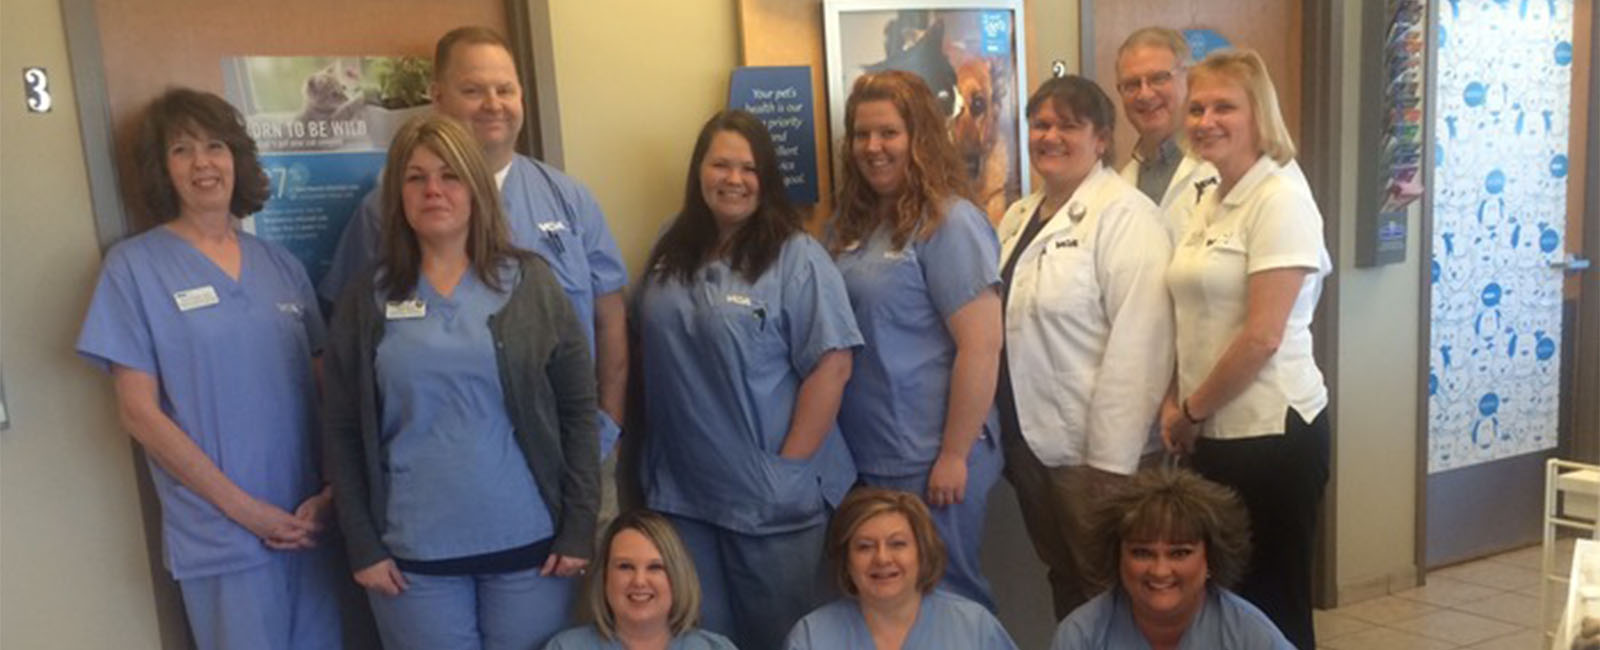 Homepage Team Picture of VCA Carrollton Animal Hospital